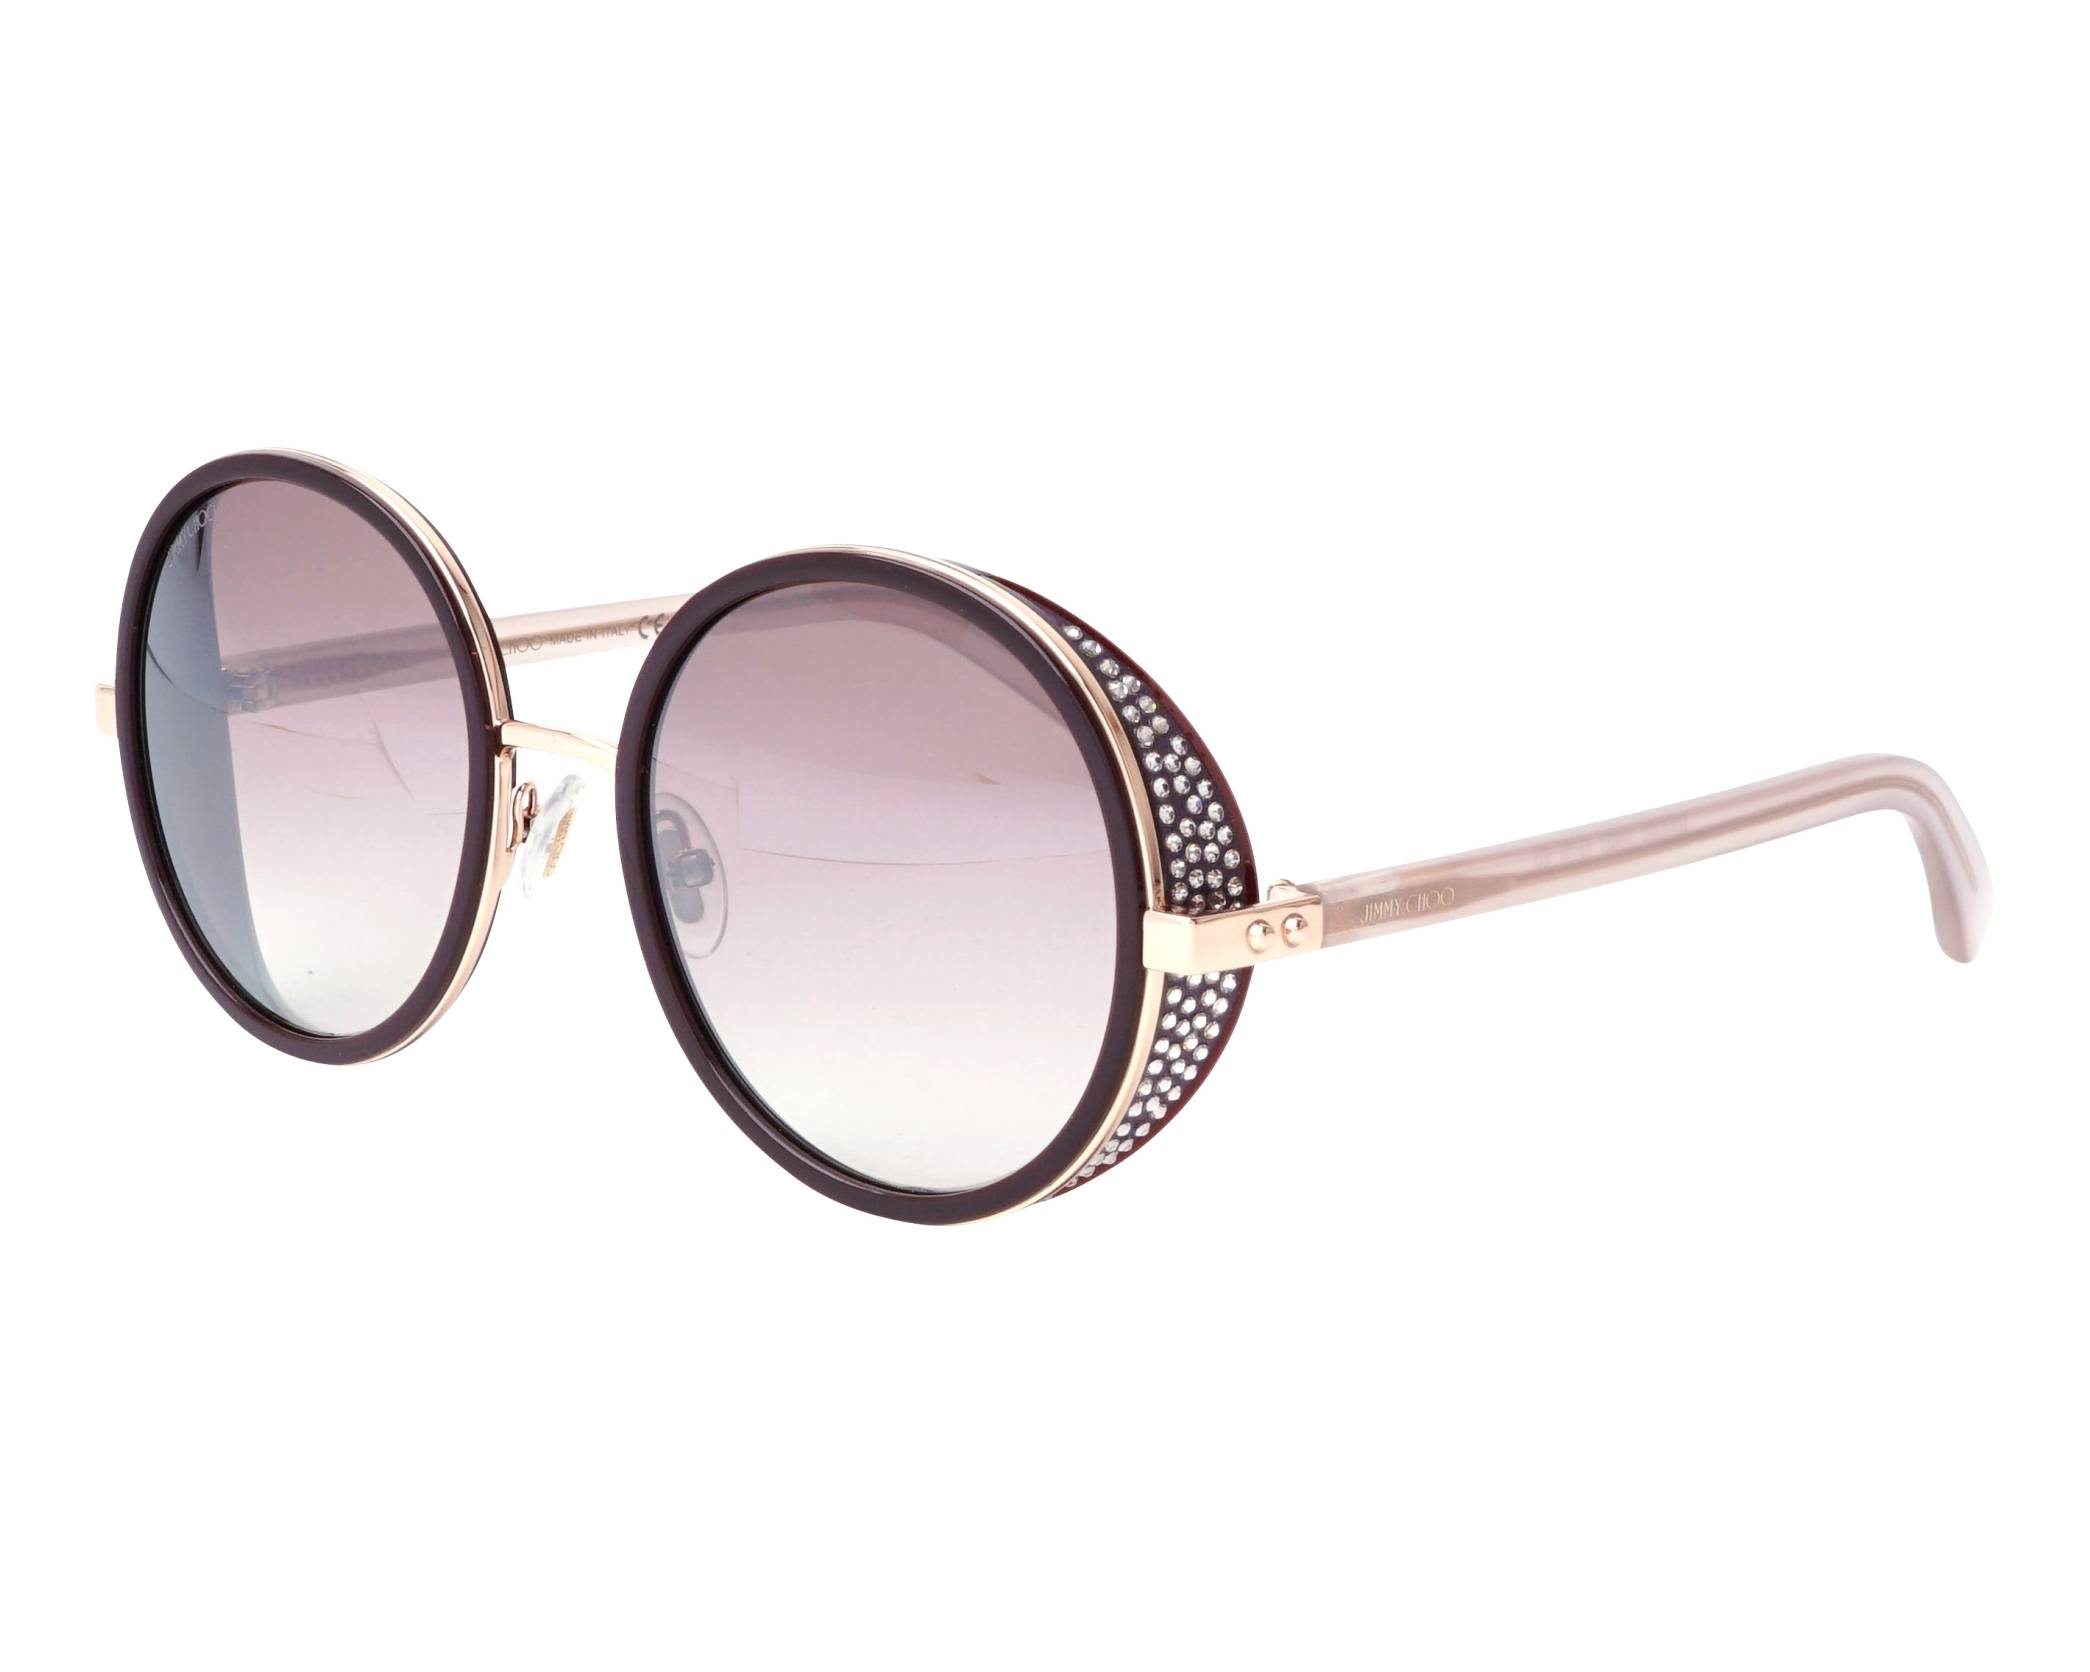 d85dbd12ef3b Sunglasses Jimmy Choo ANDIE-N-S OT7NQ 54-21 Plum Rose gold profile view